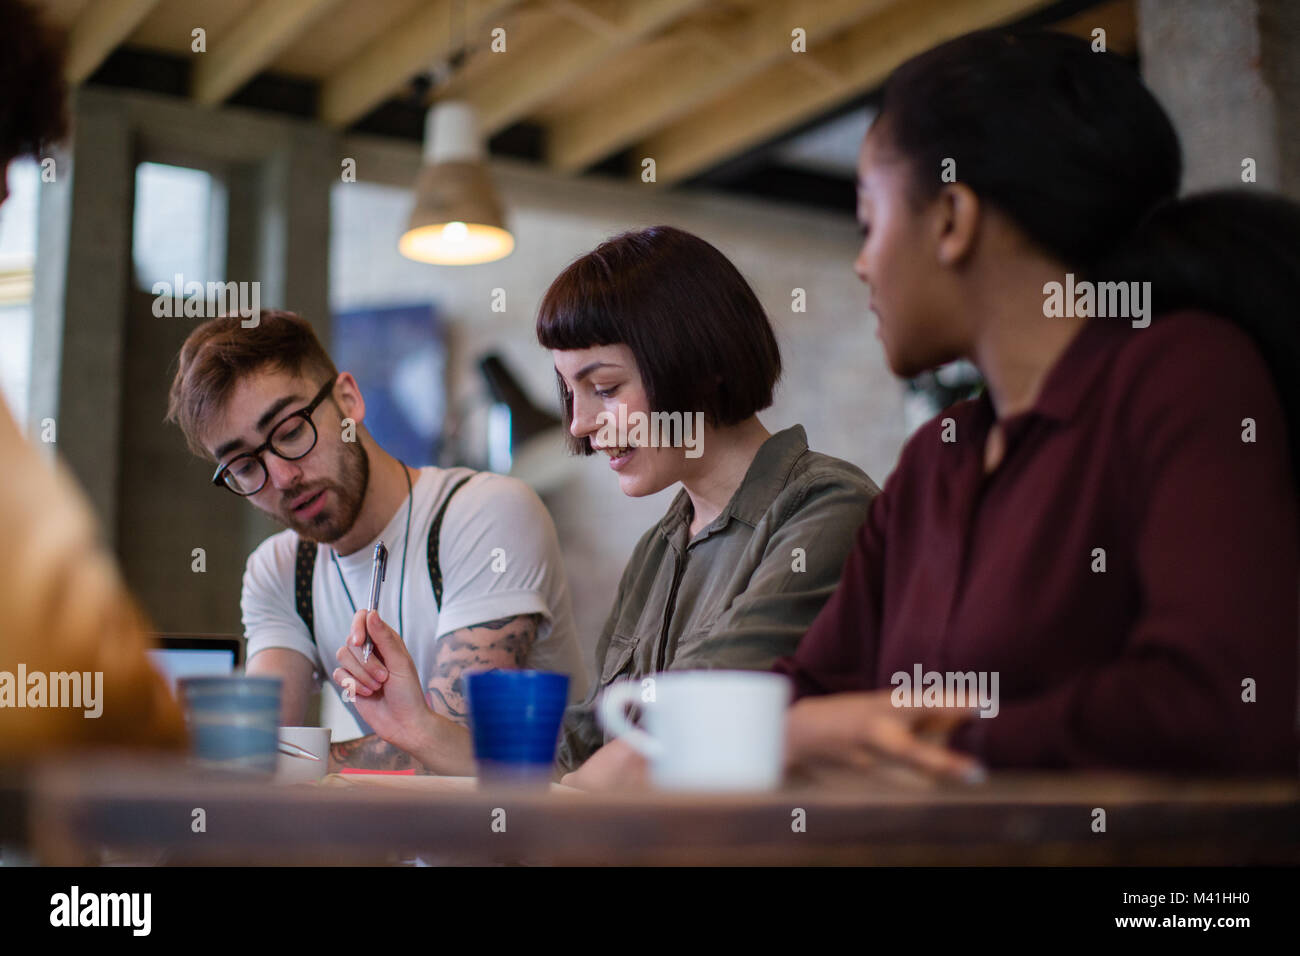 Group of young entrepreneurs working together - Stock Image